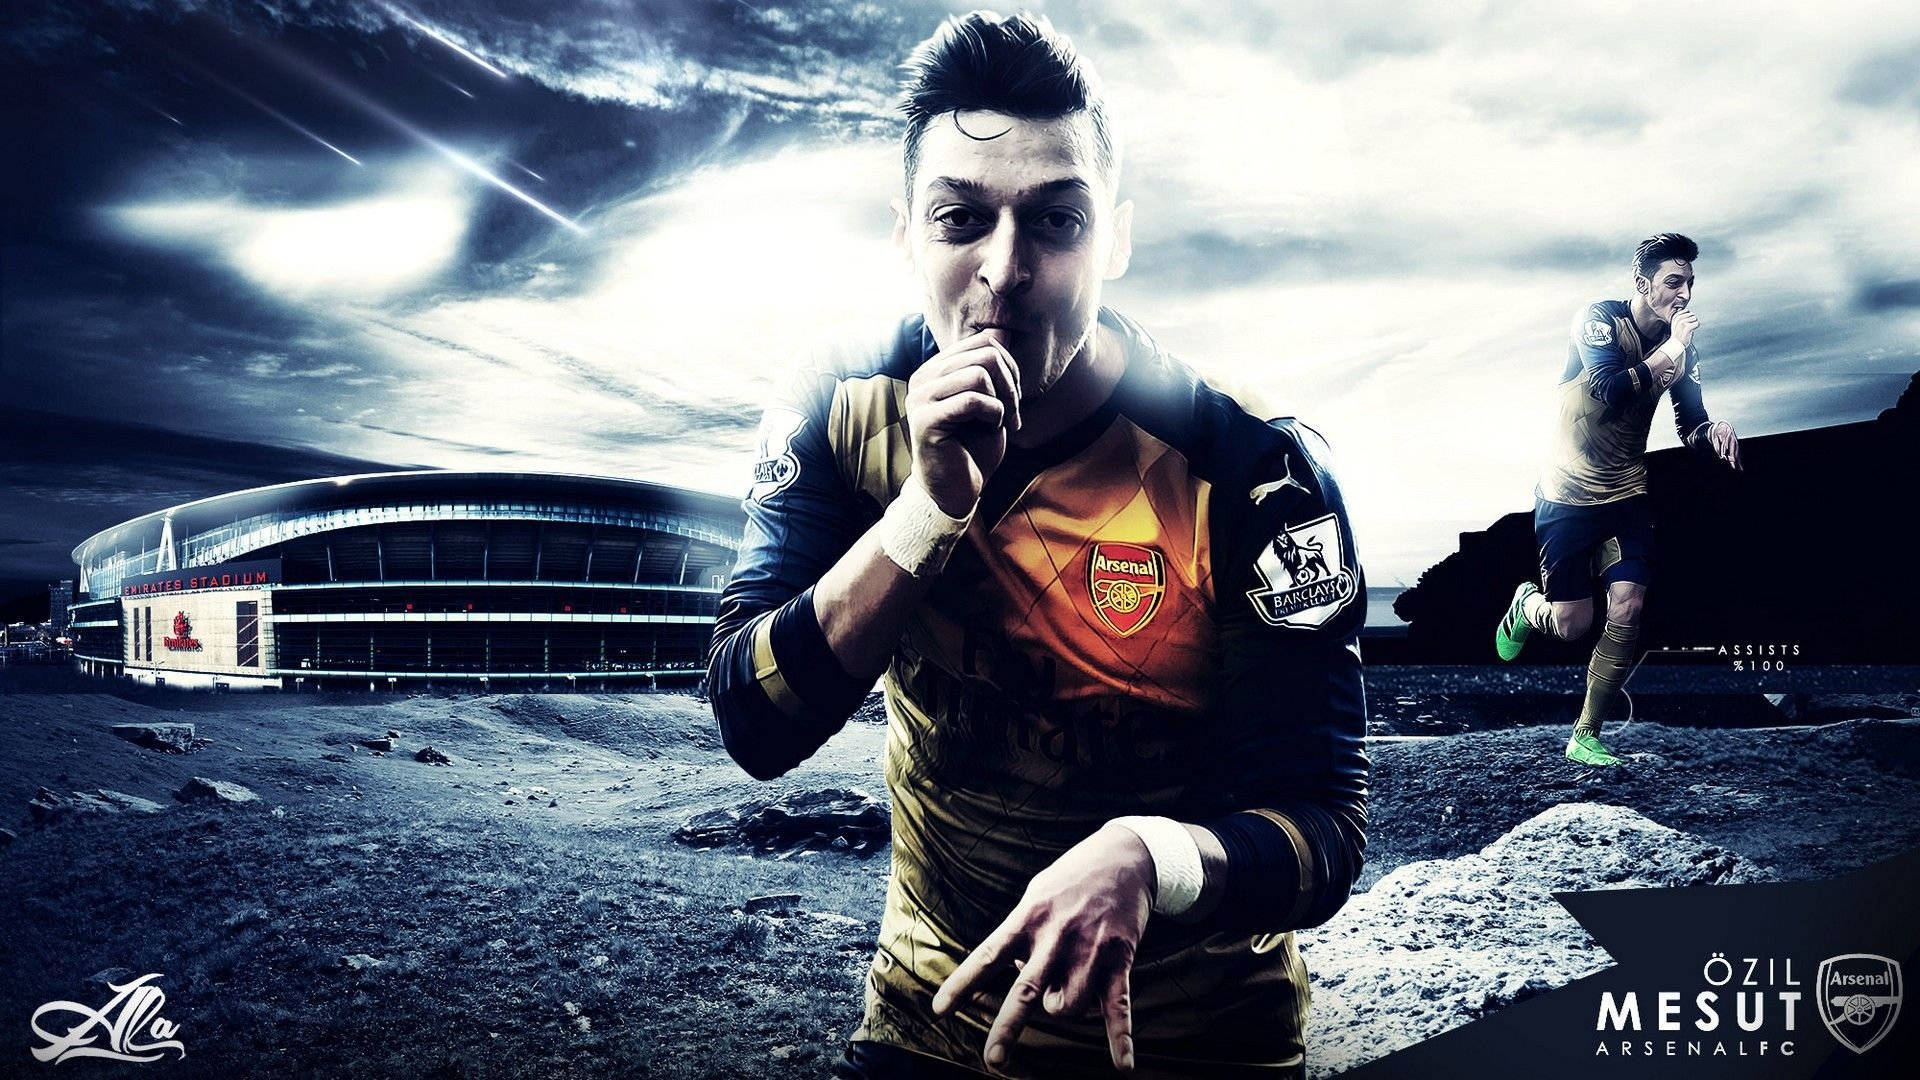 Mesut Ozil Arsenal Wallpaper Hd Arsenal Wallpapers Mesut